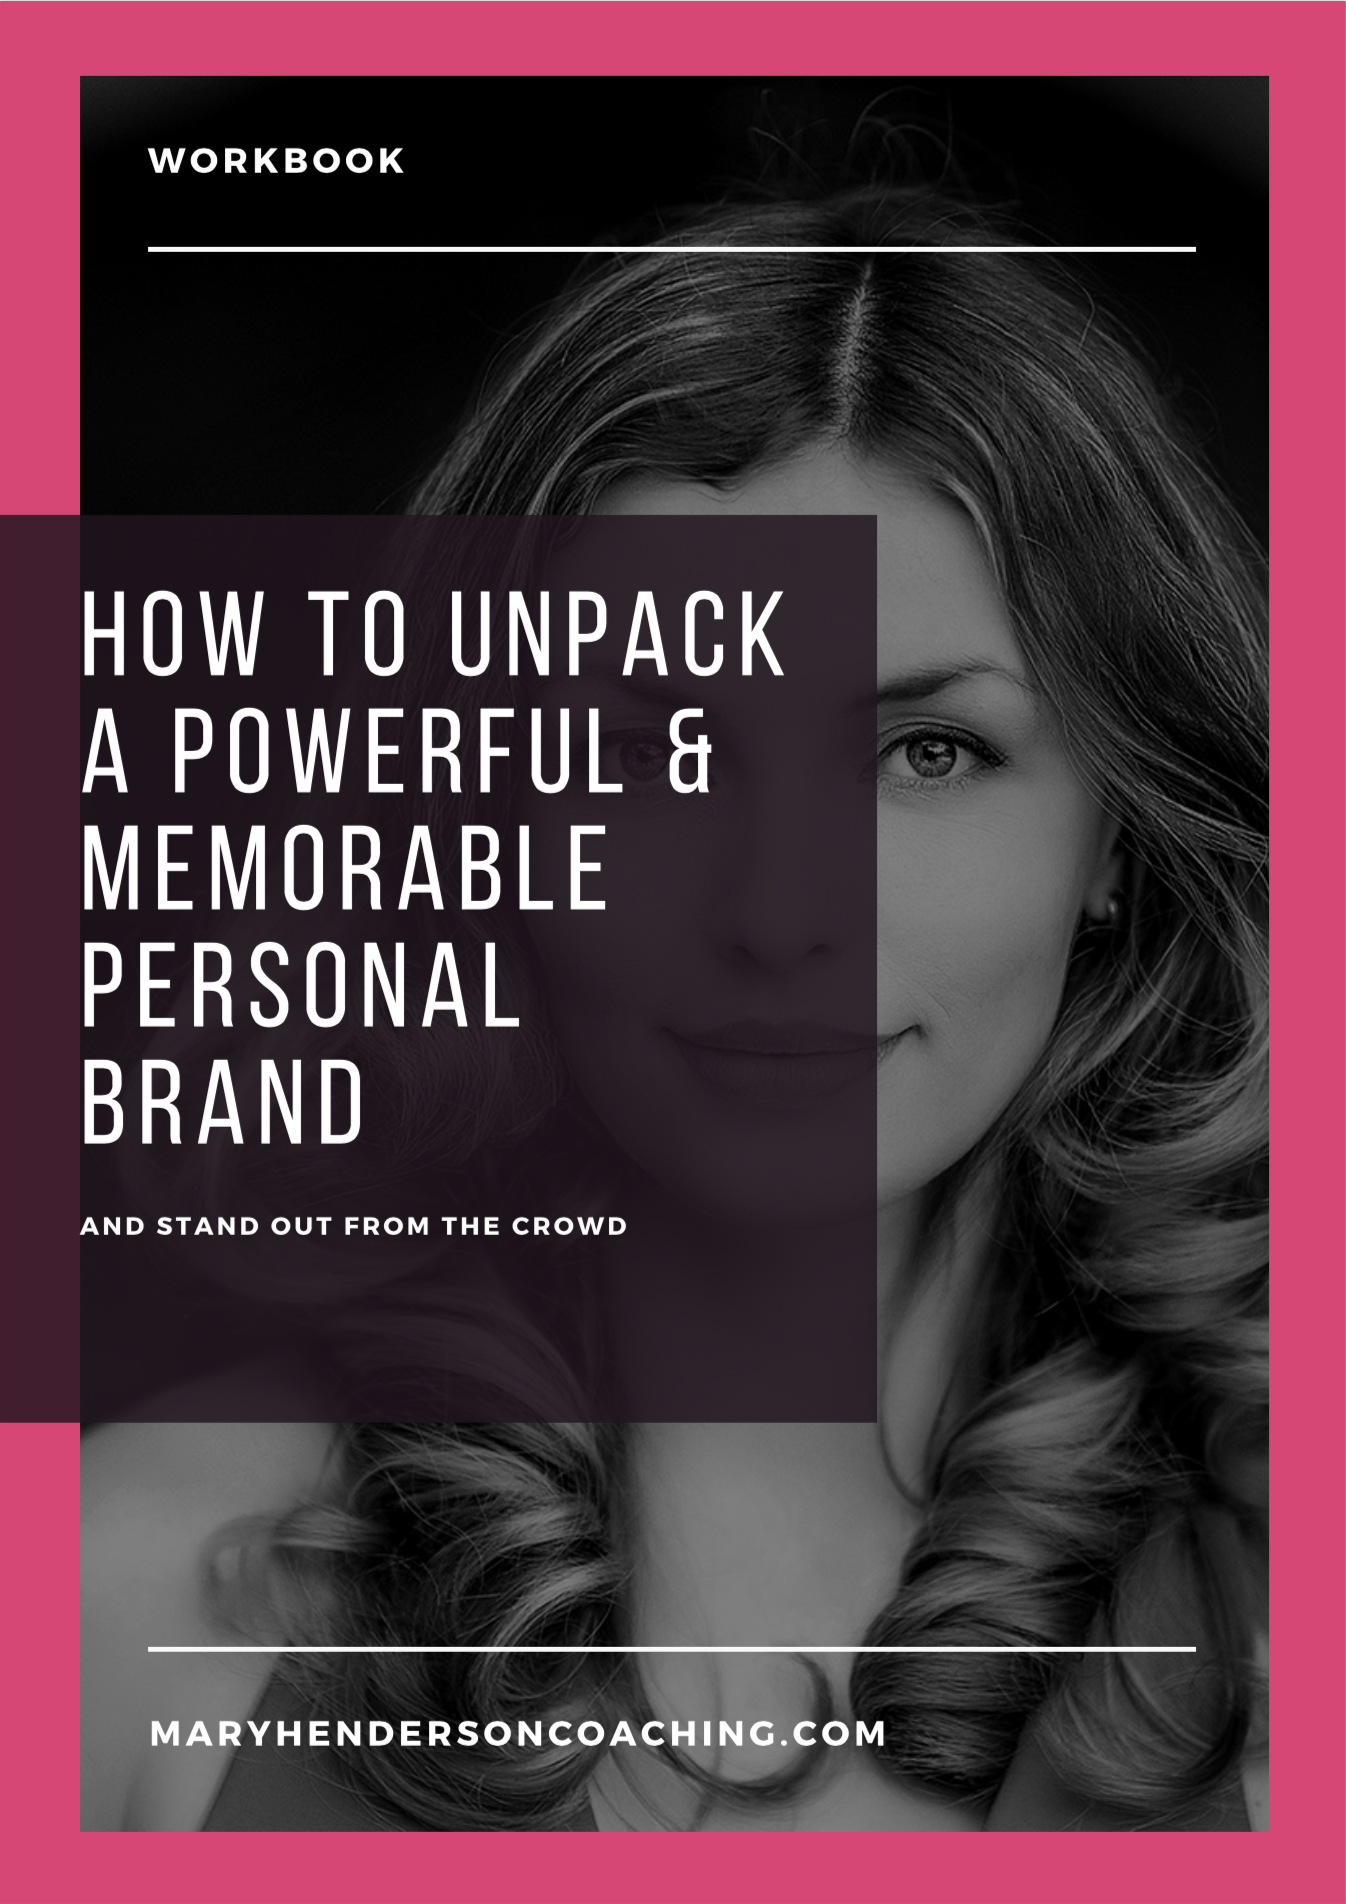 Cover: How unpack a powerful and memorable personal brand